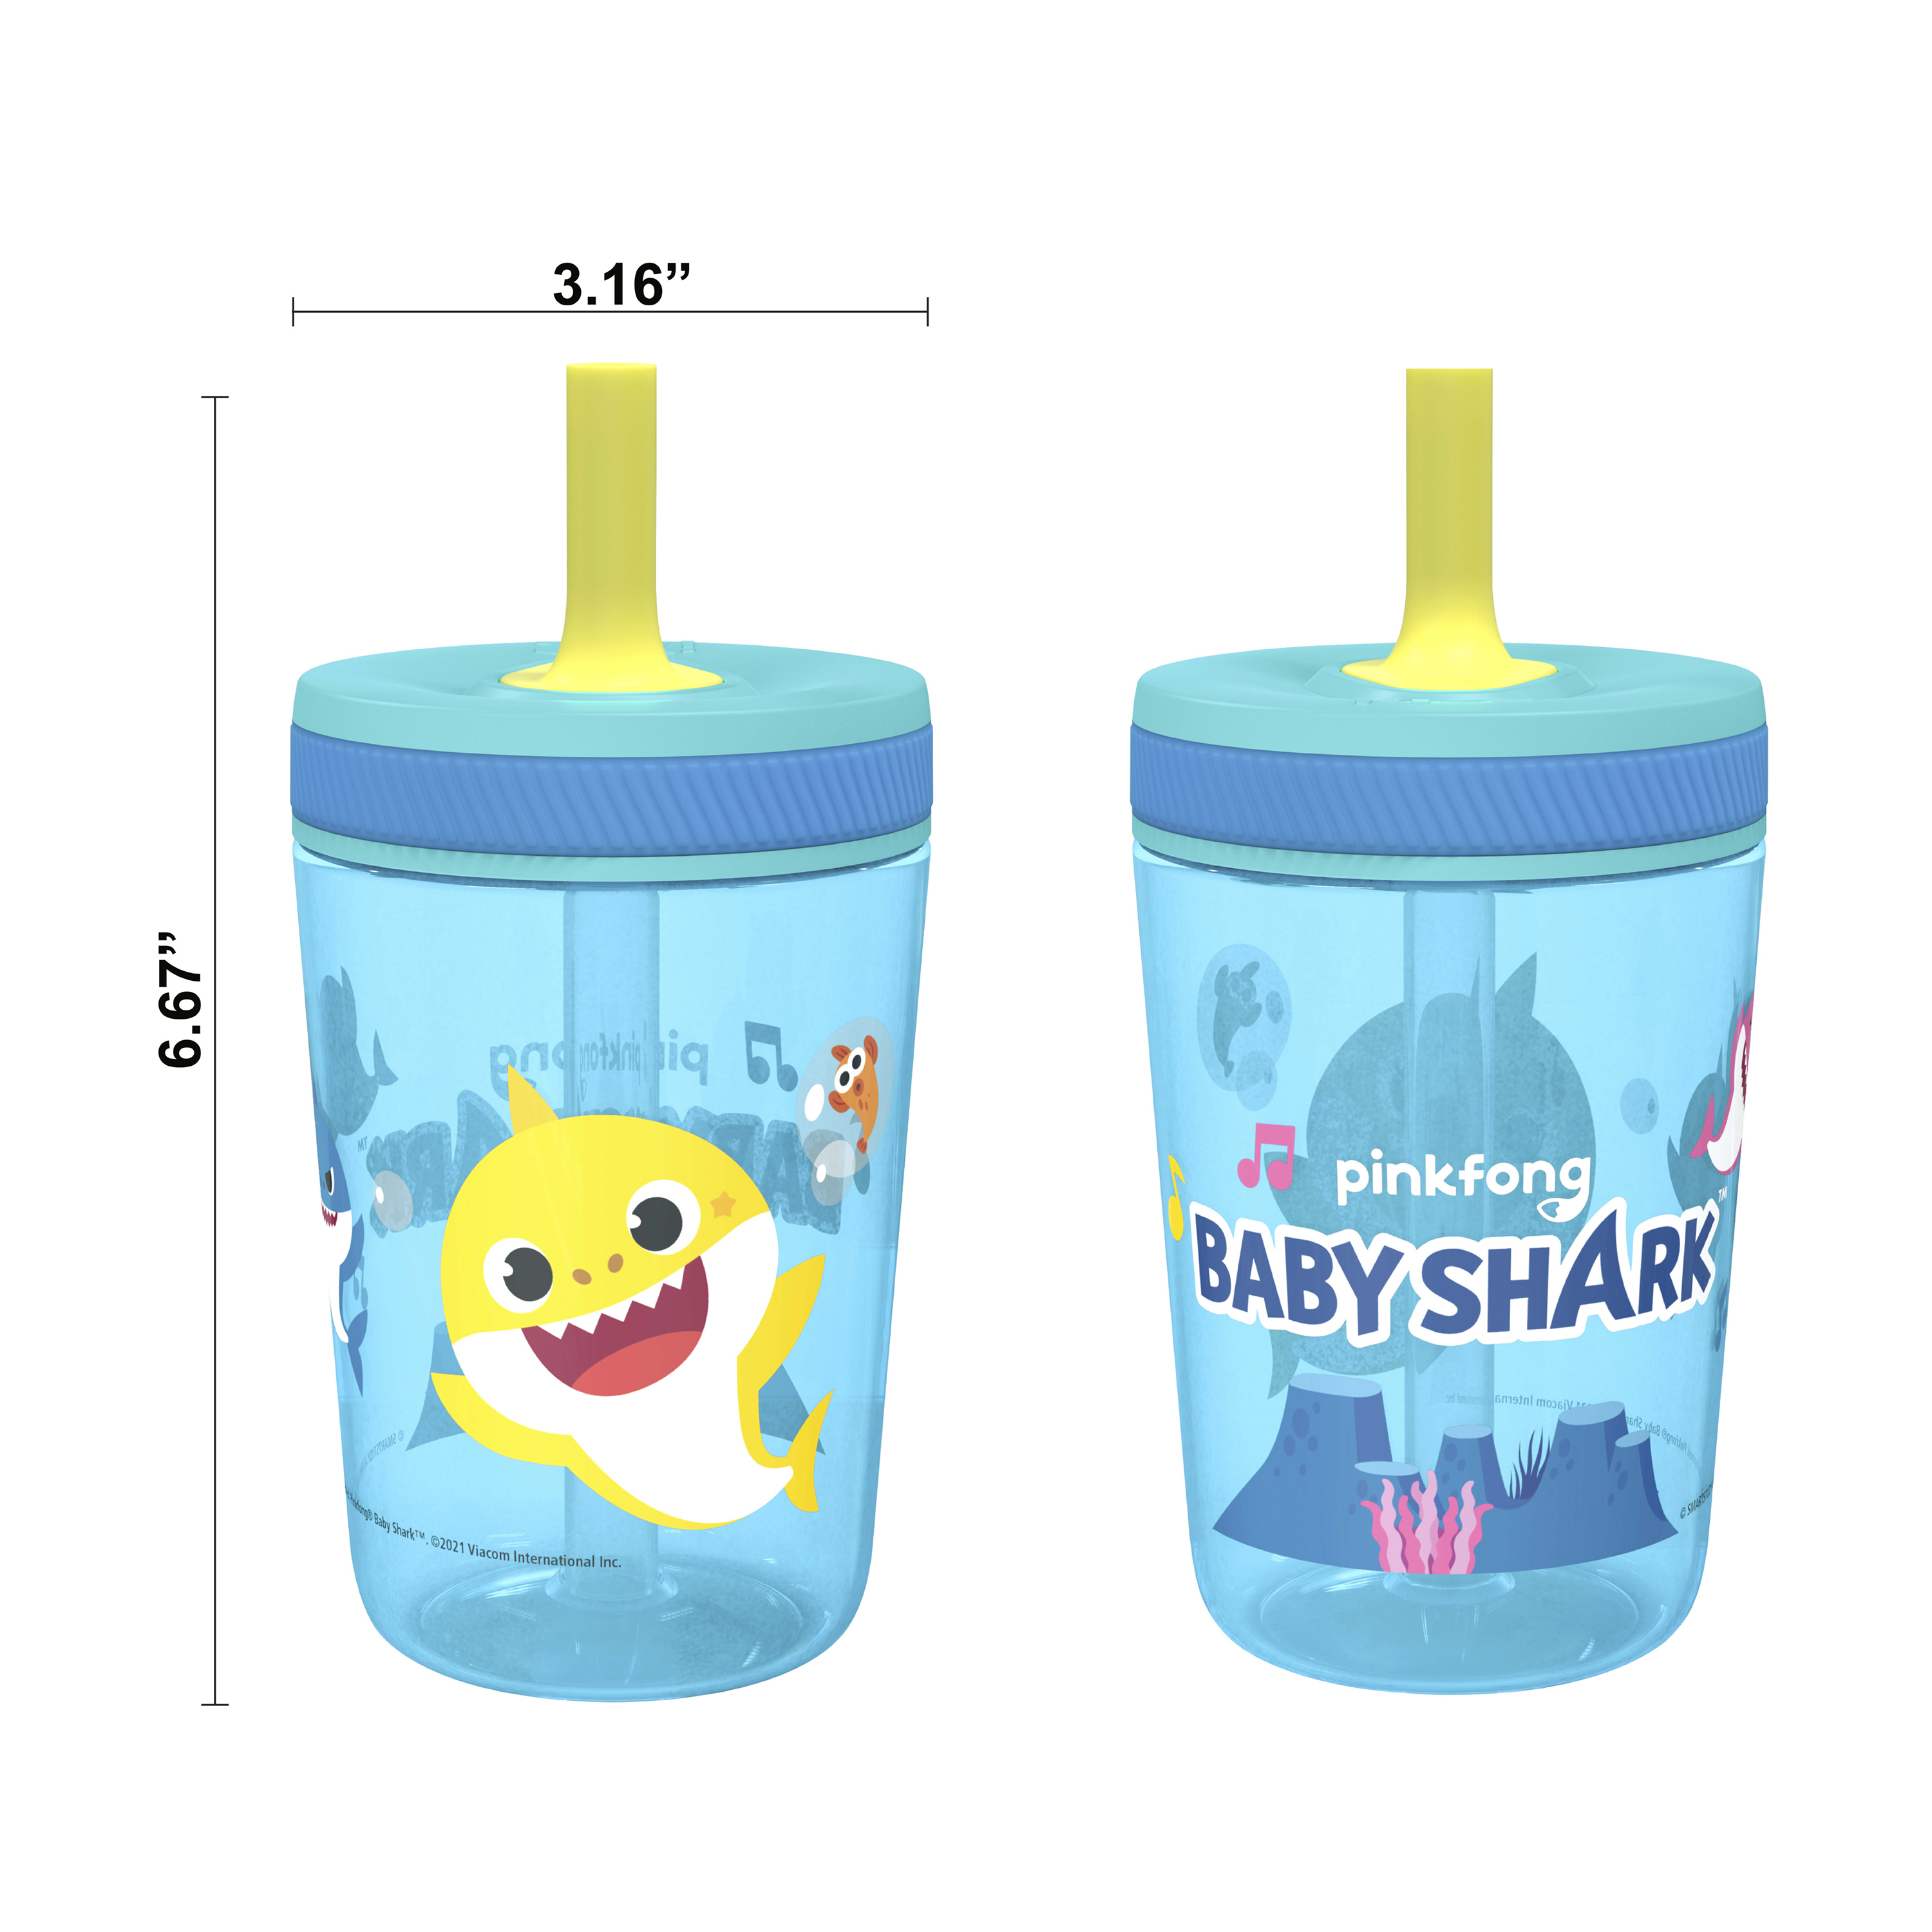 Pinkfong 15  ounce Plastic Tumbler with Lid and Straw, Baby Shark, 2-piece set slideshow image 2